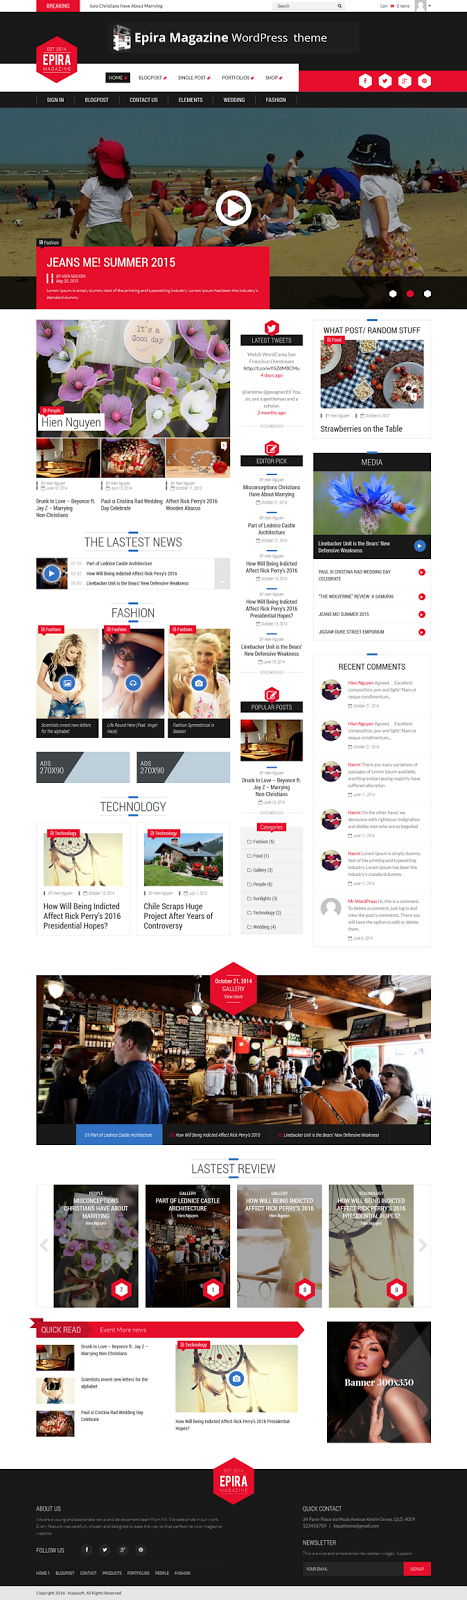 Best Premium Magazine theme